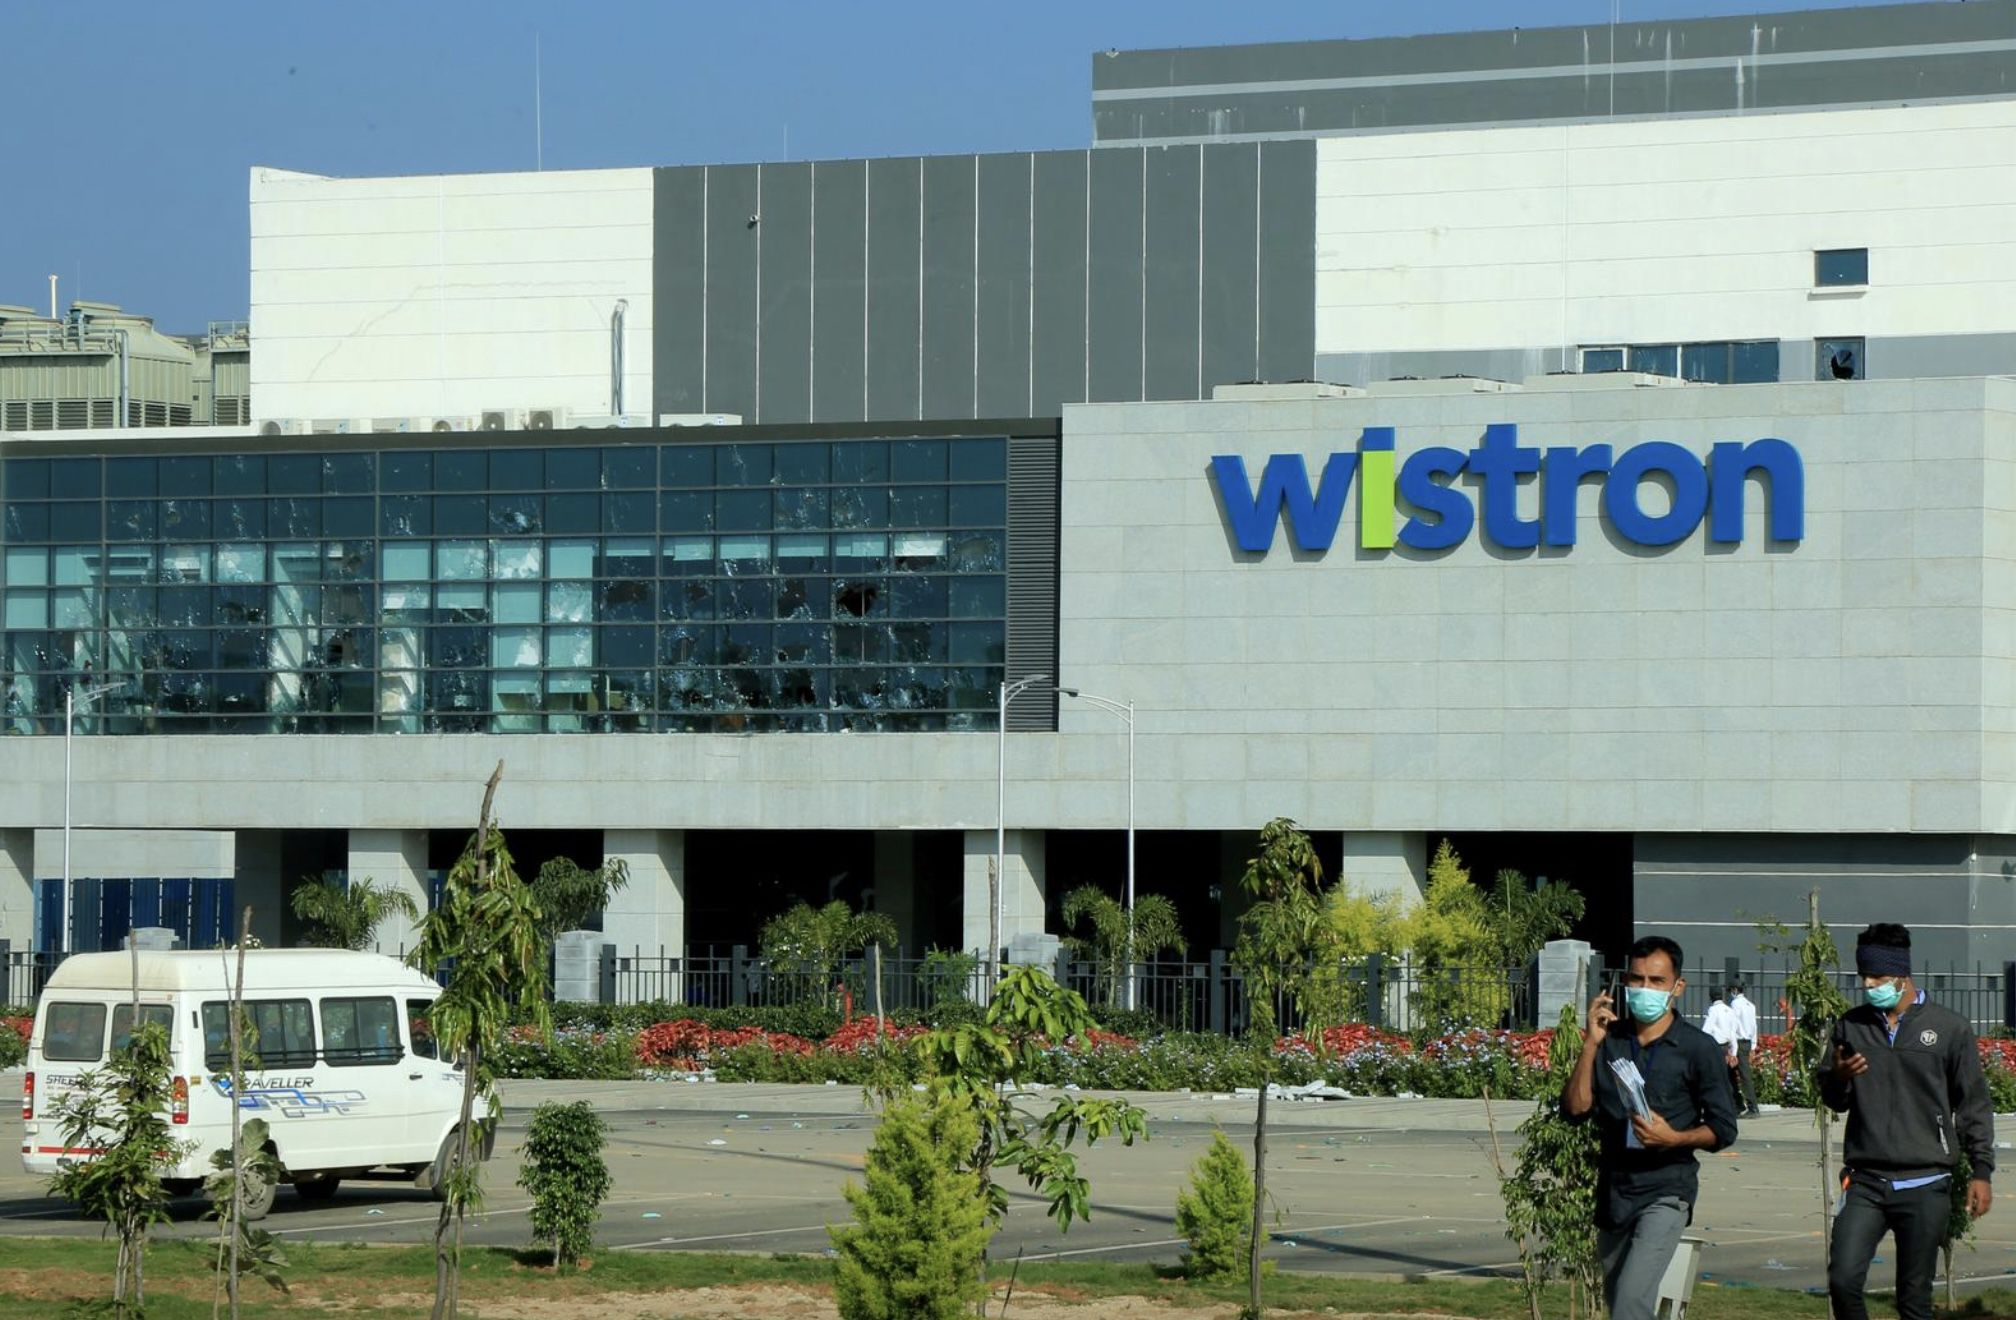 Apple Supplier Wistron 'Working Hard' to Raise Standards at Violence-Hit India Factory